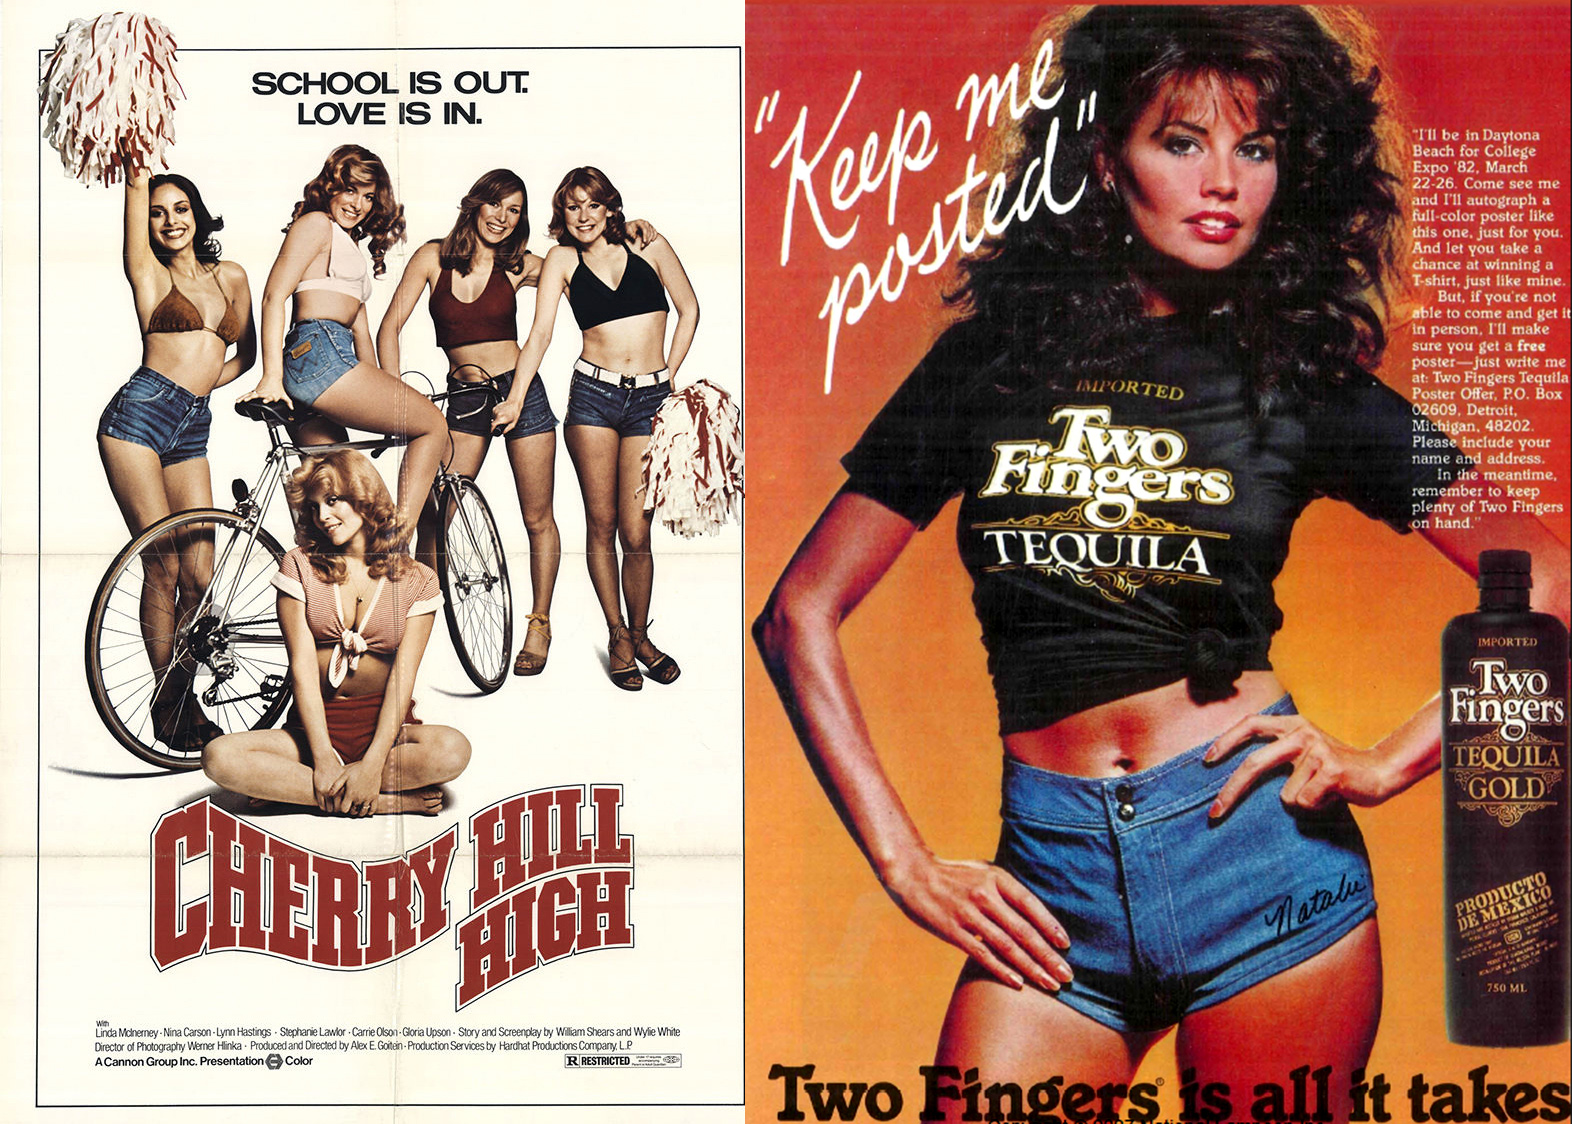 hotpants-movies-and-advertising